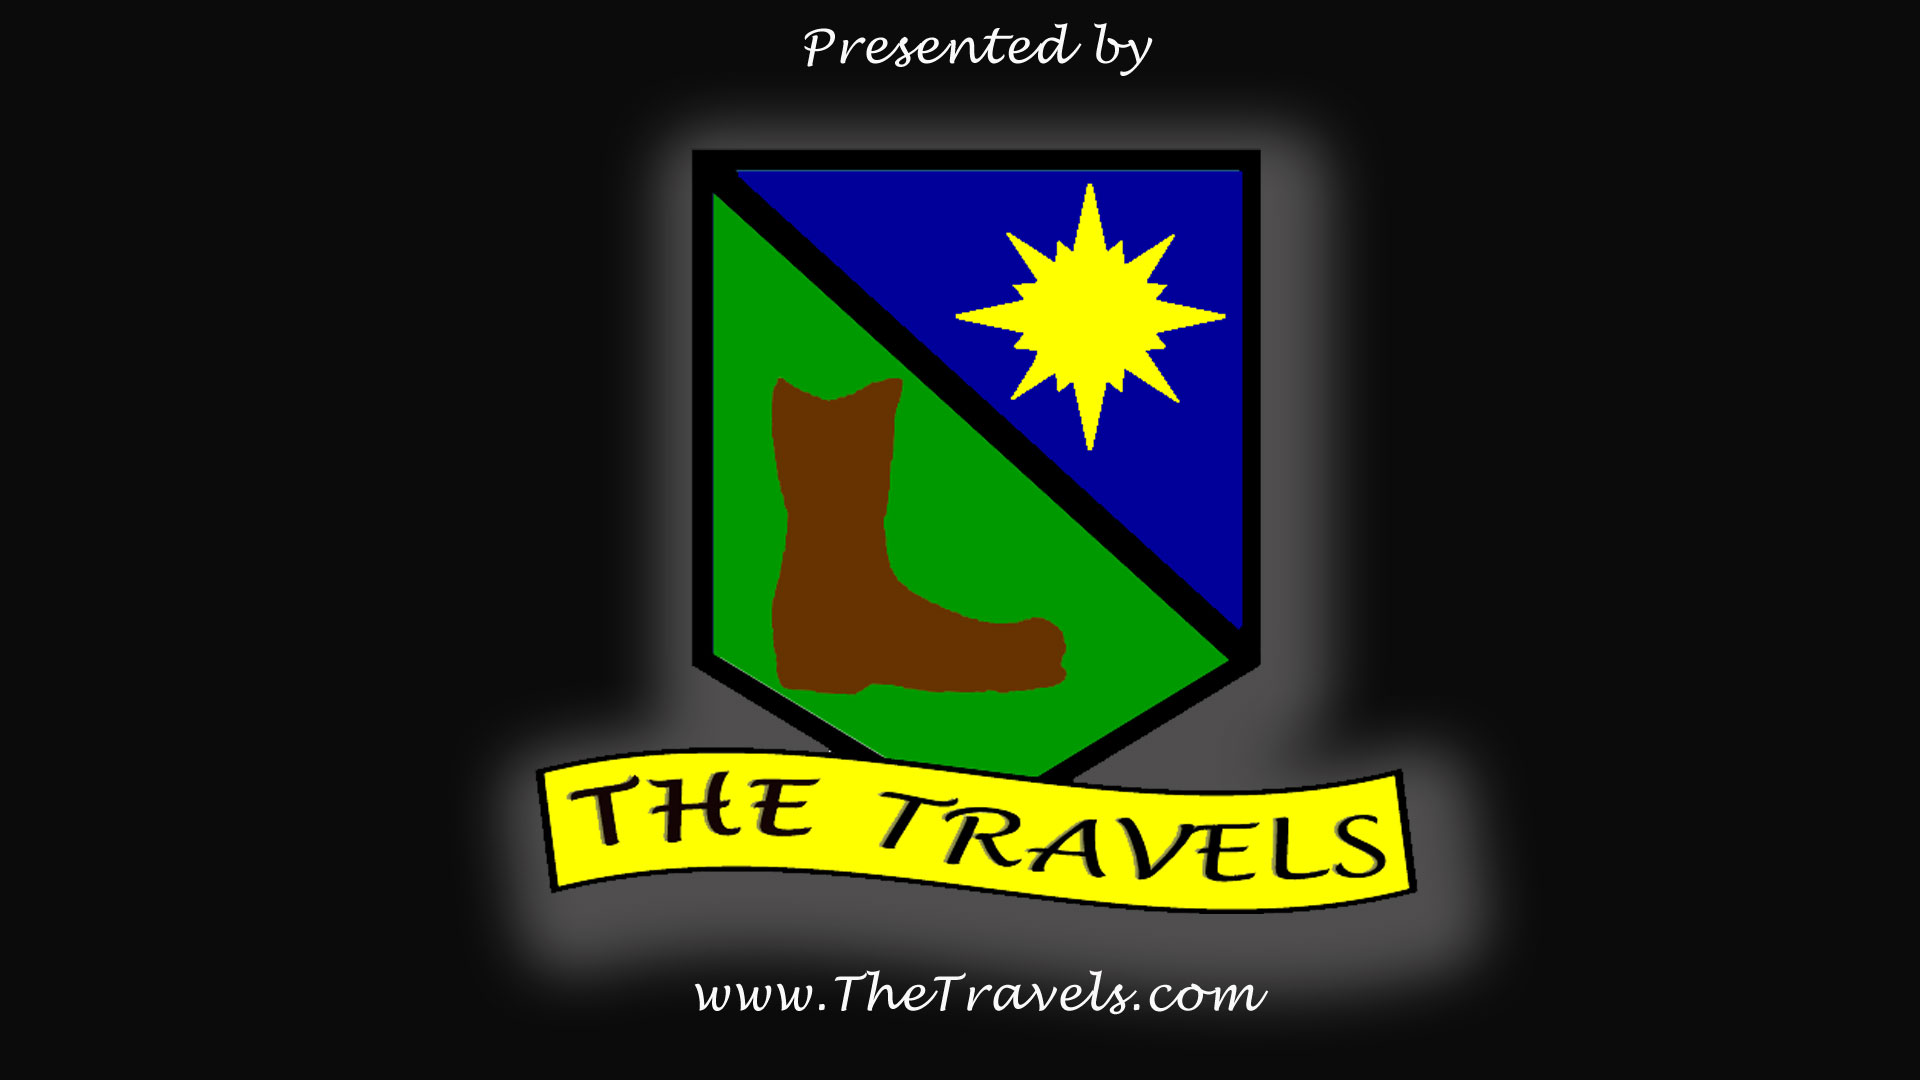 The Travels intro still